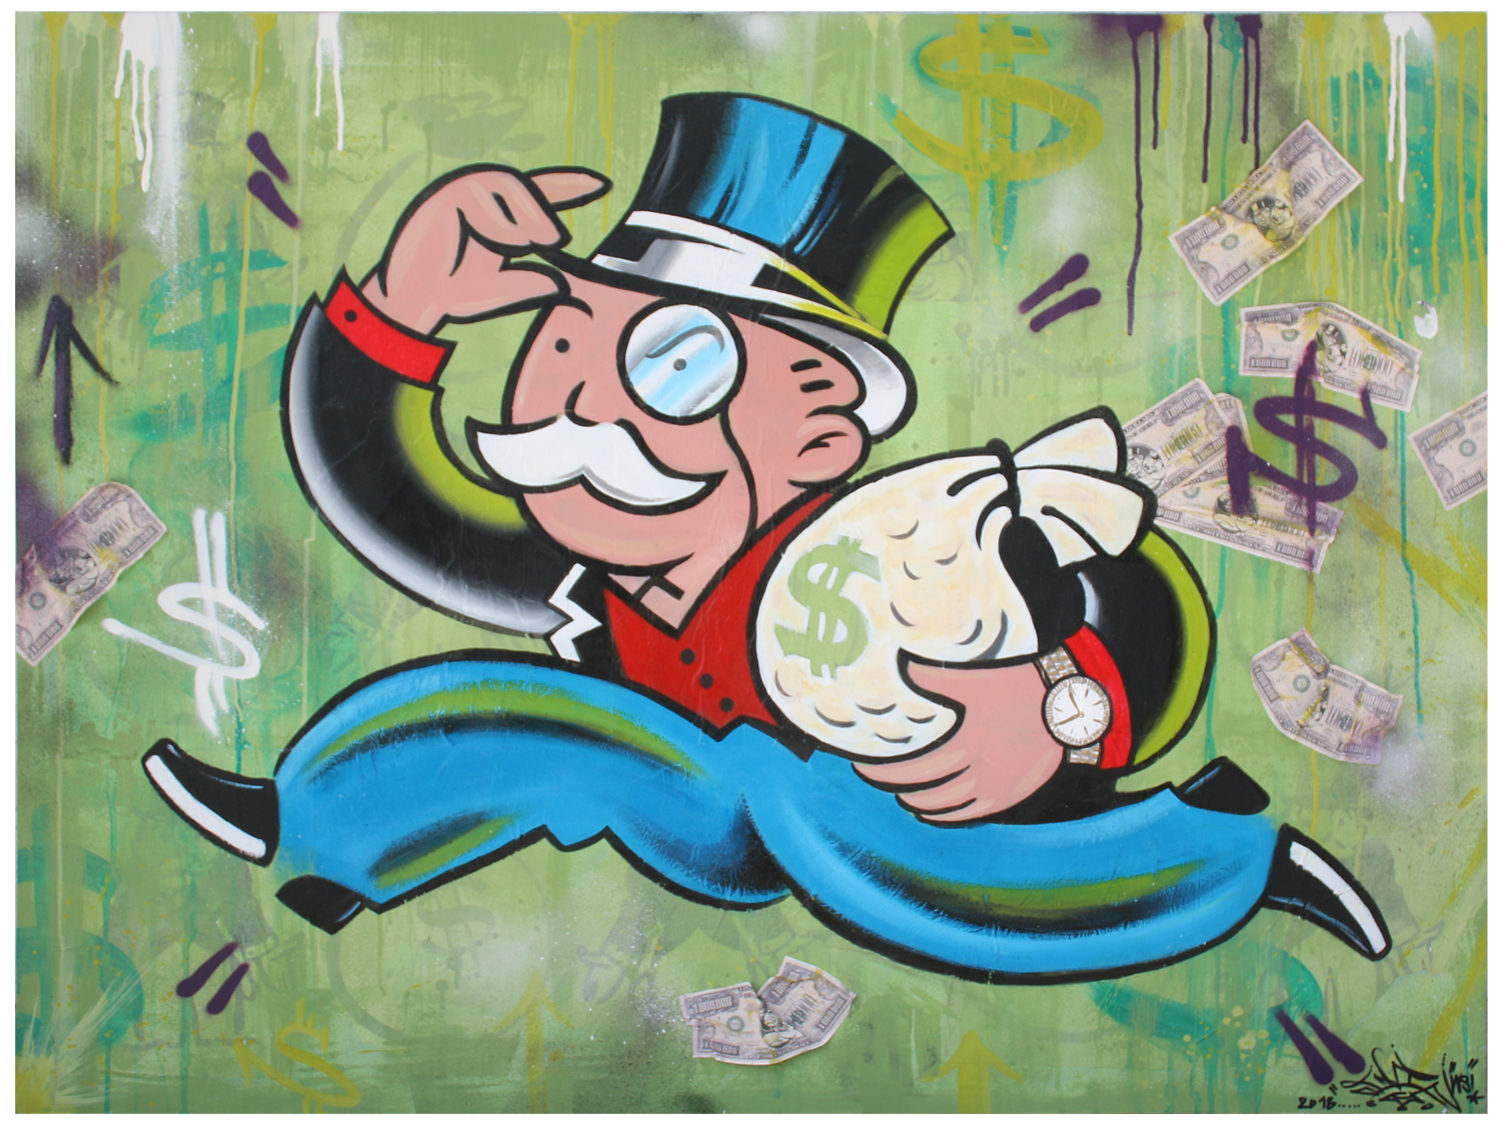 Monopoly Cash 2018 – Spray Paint, Acrylic, Mixed Media on Wood Panel – 36×48